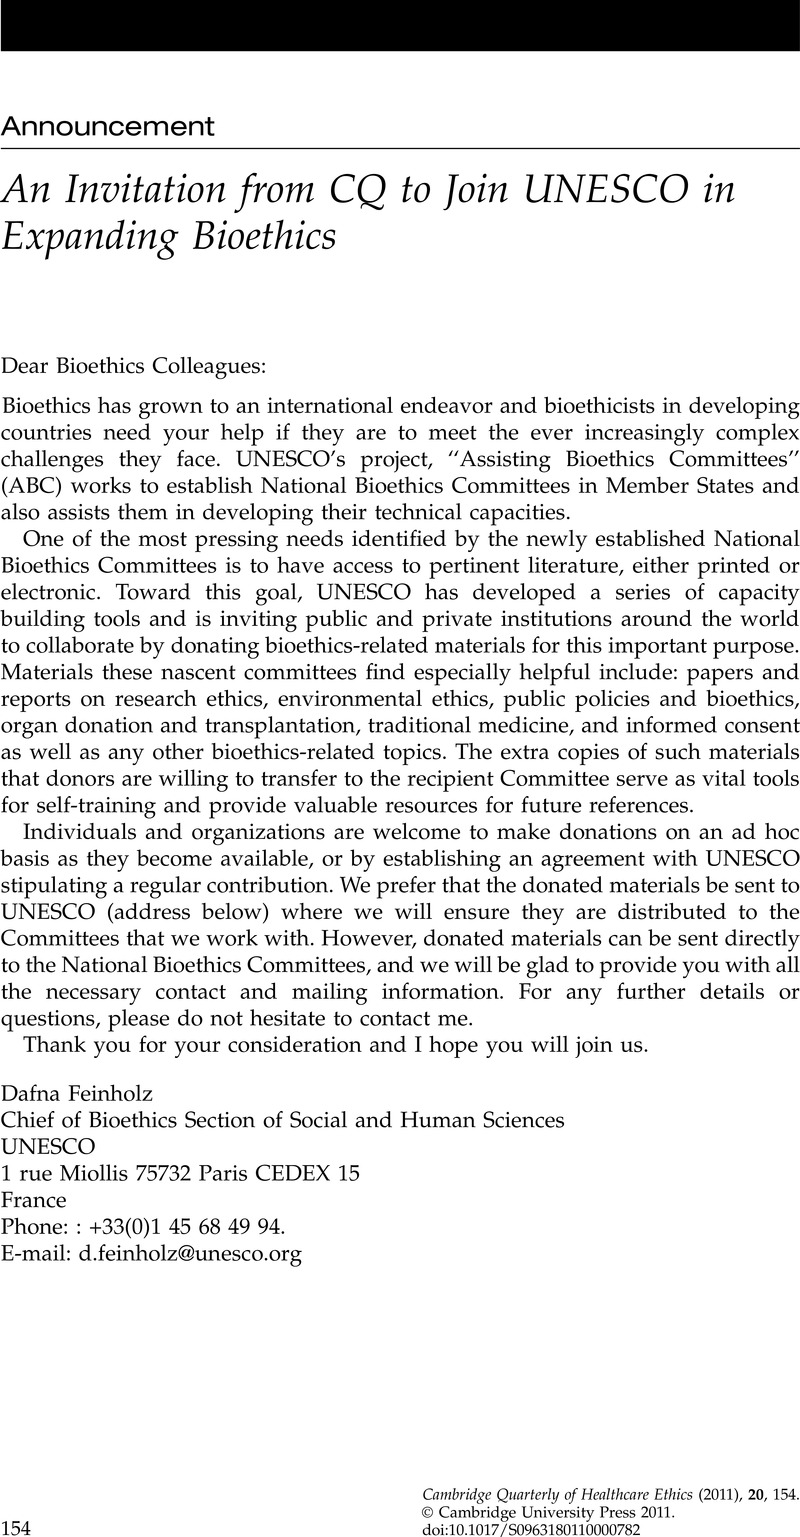 An Invitation from CQ to Join UNESCO in Expanding Bioethics